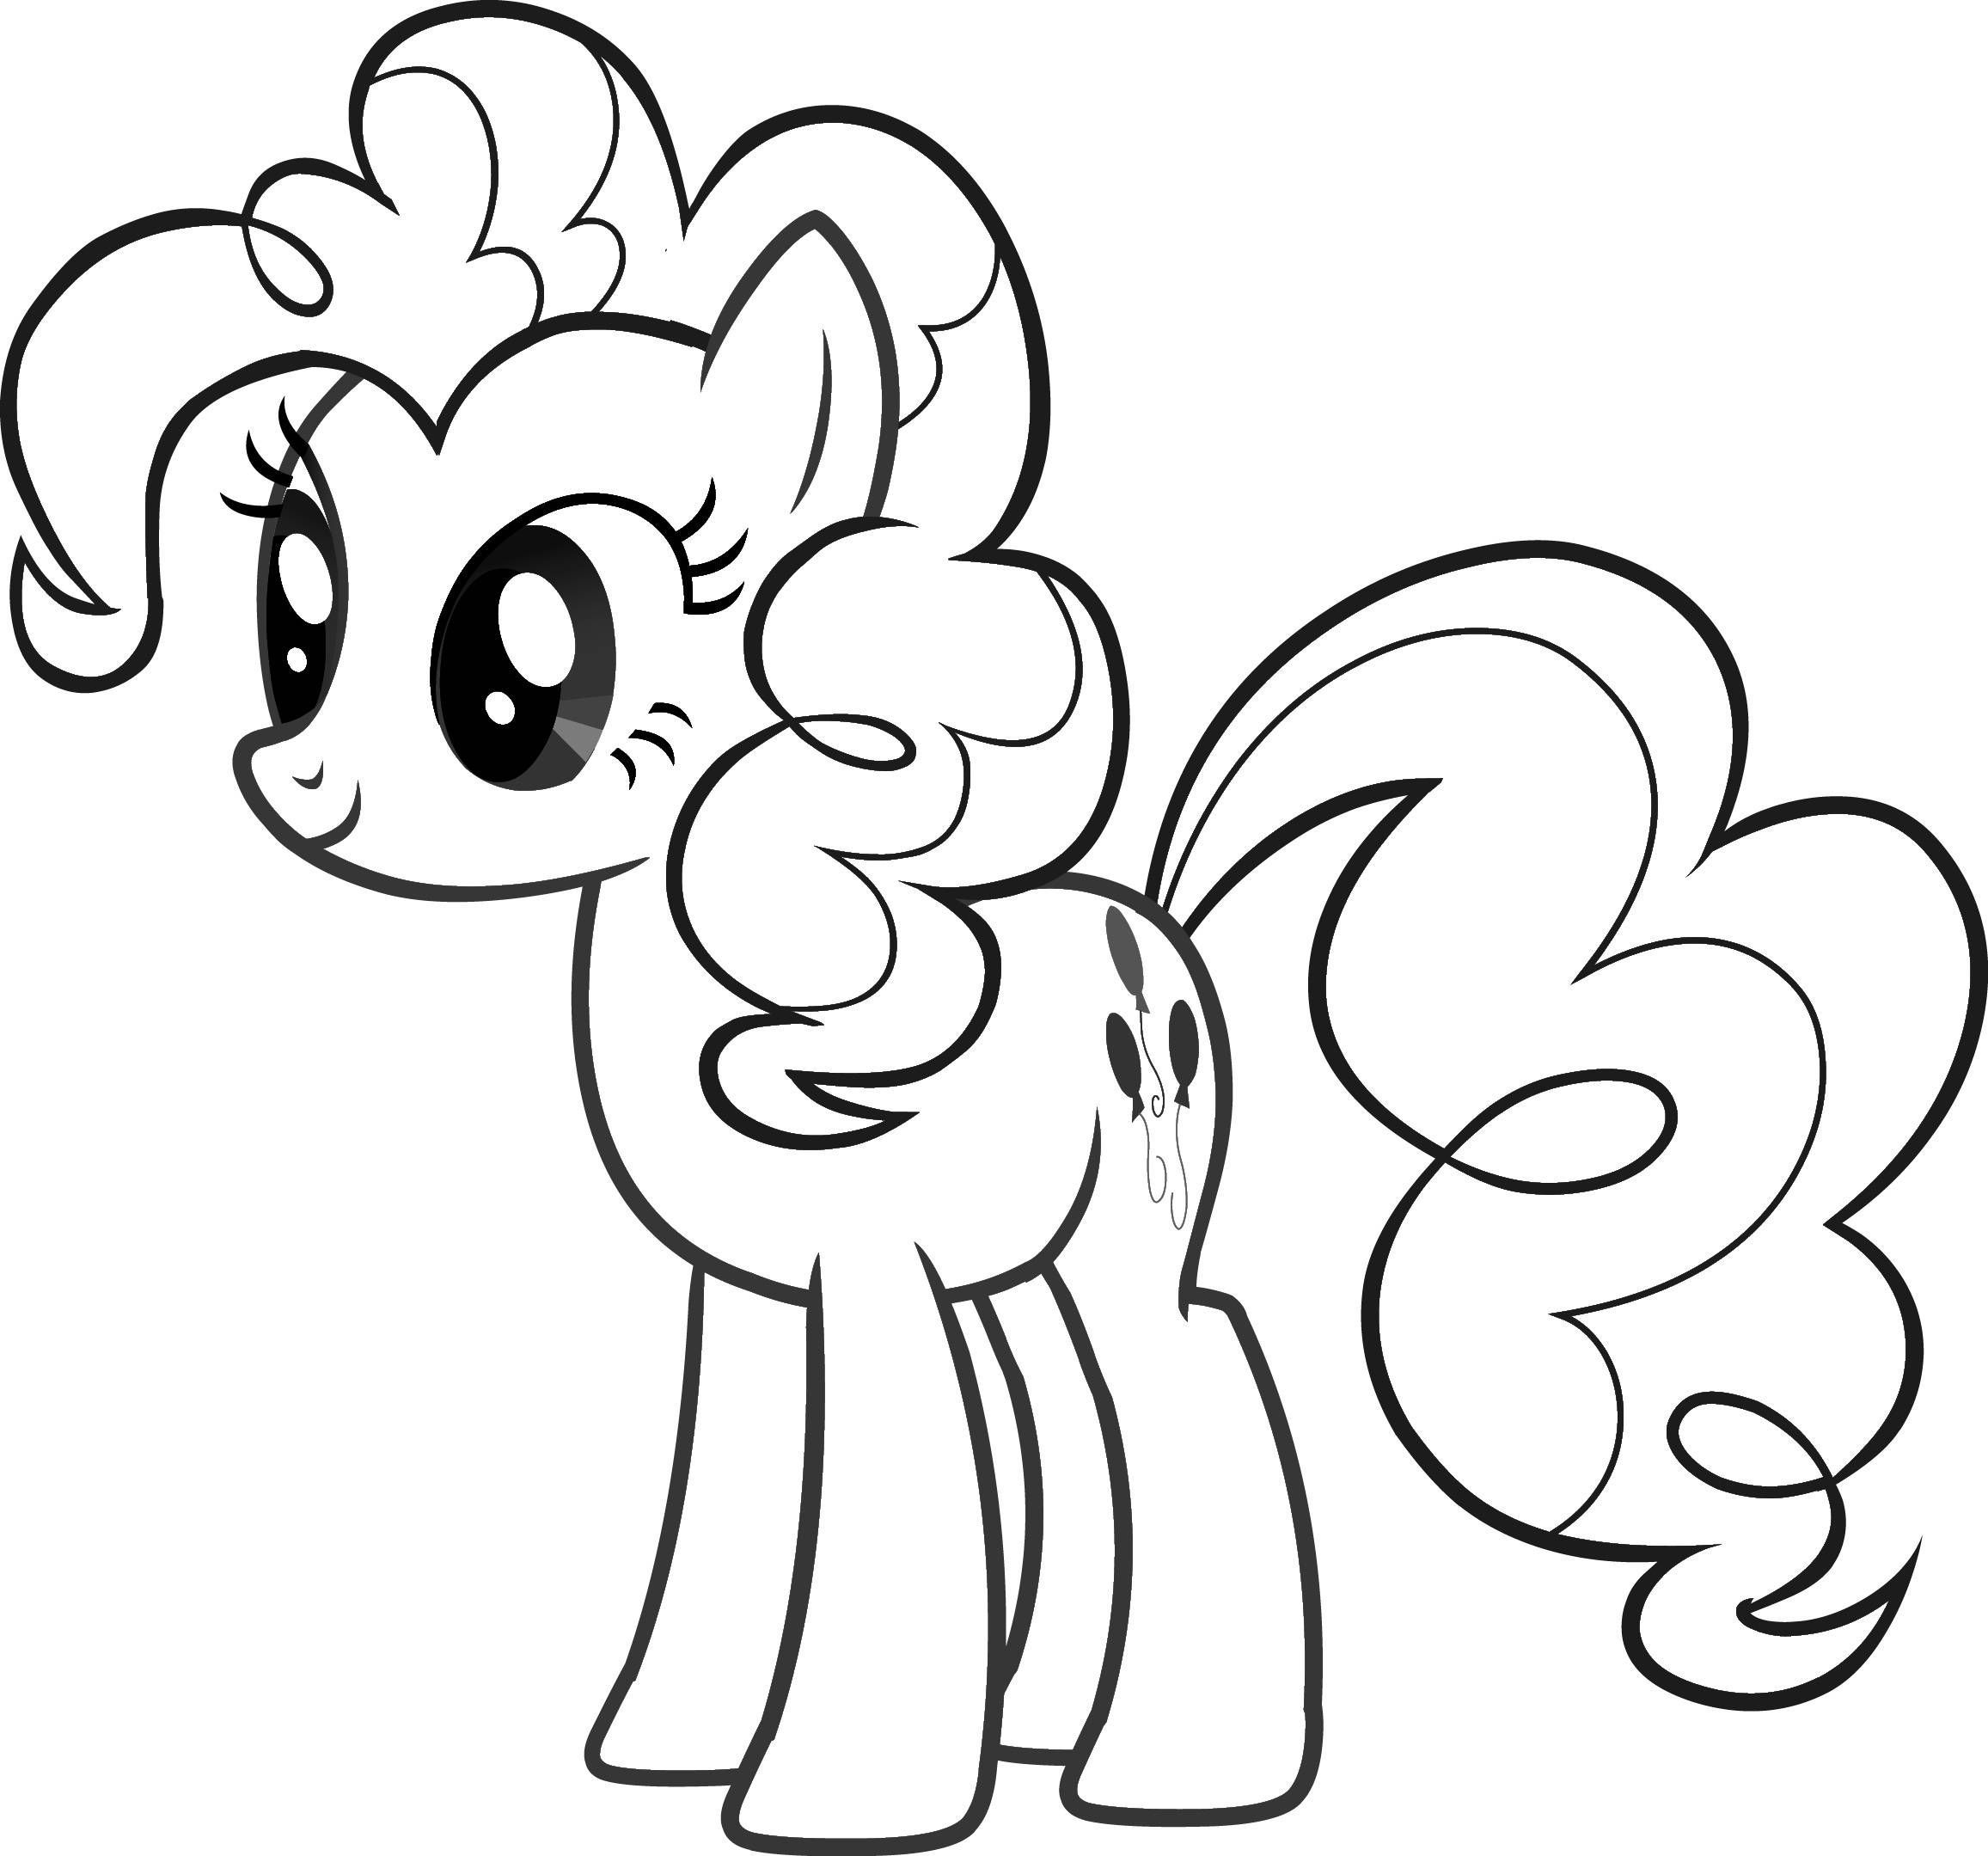 My Little Pony For Coloring My Little Pony Coloring Book My Little Pony Coloring Unicorn Coloring Pages My Little Pony Coloring Kids Printable Coloring Pages